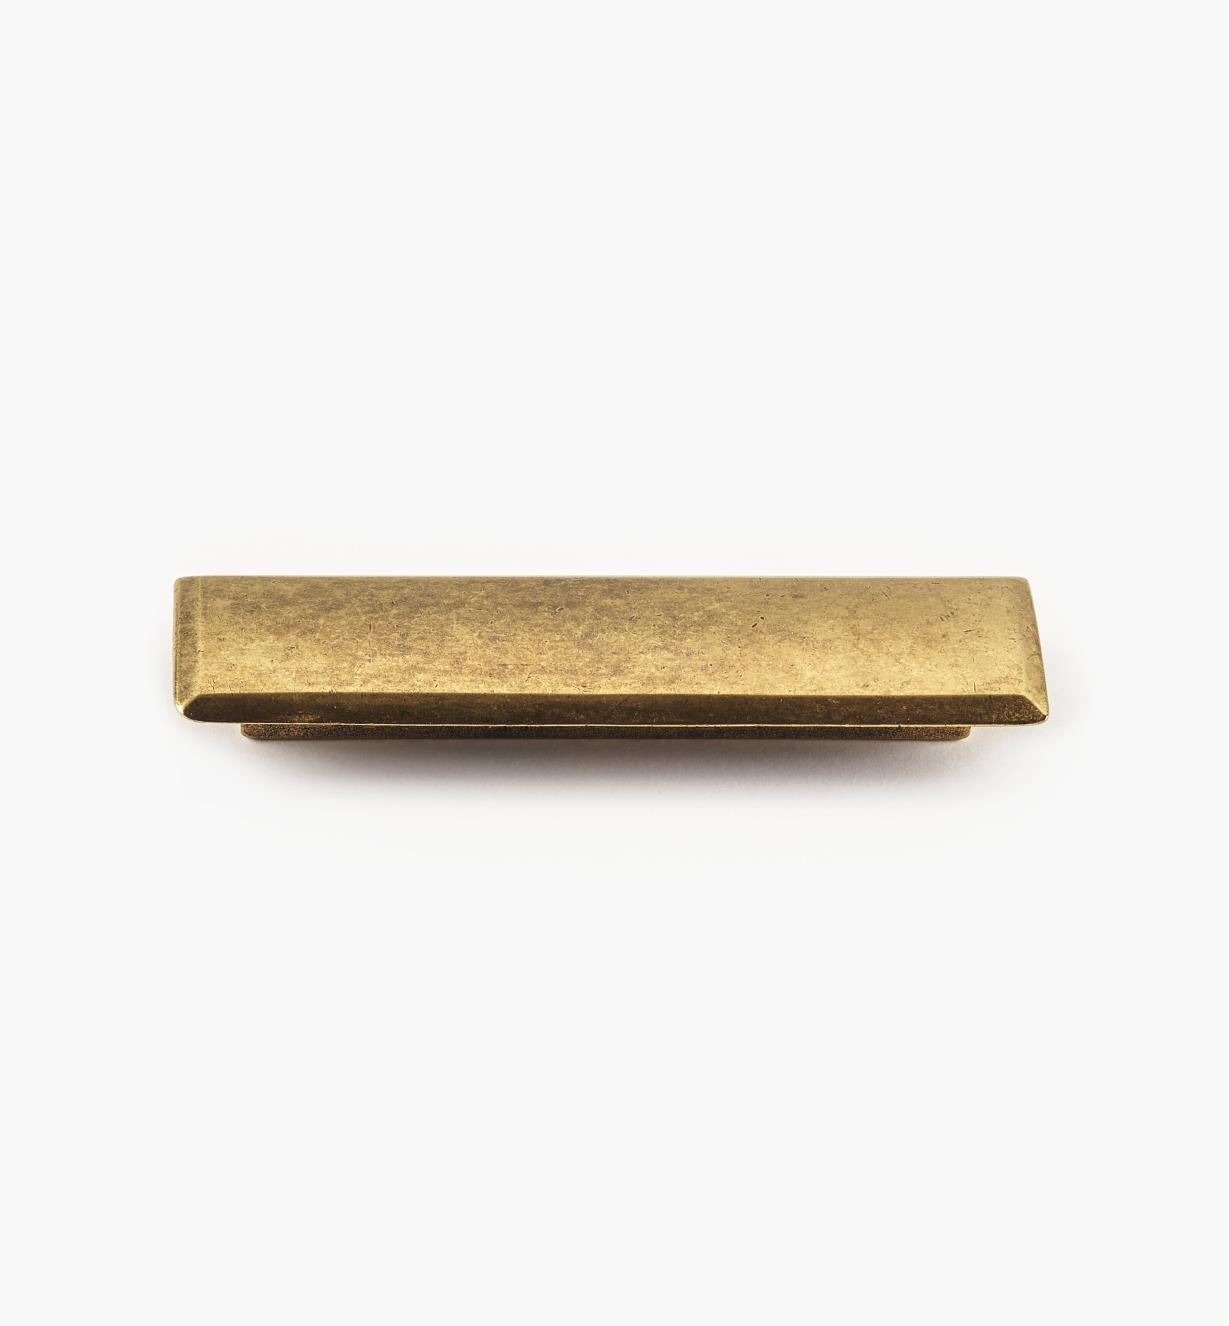 01G1903 - 96mm x 124mm Antique Brass Shield Pull, each